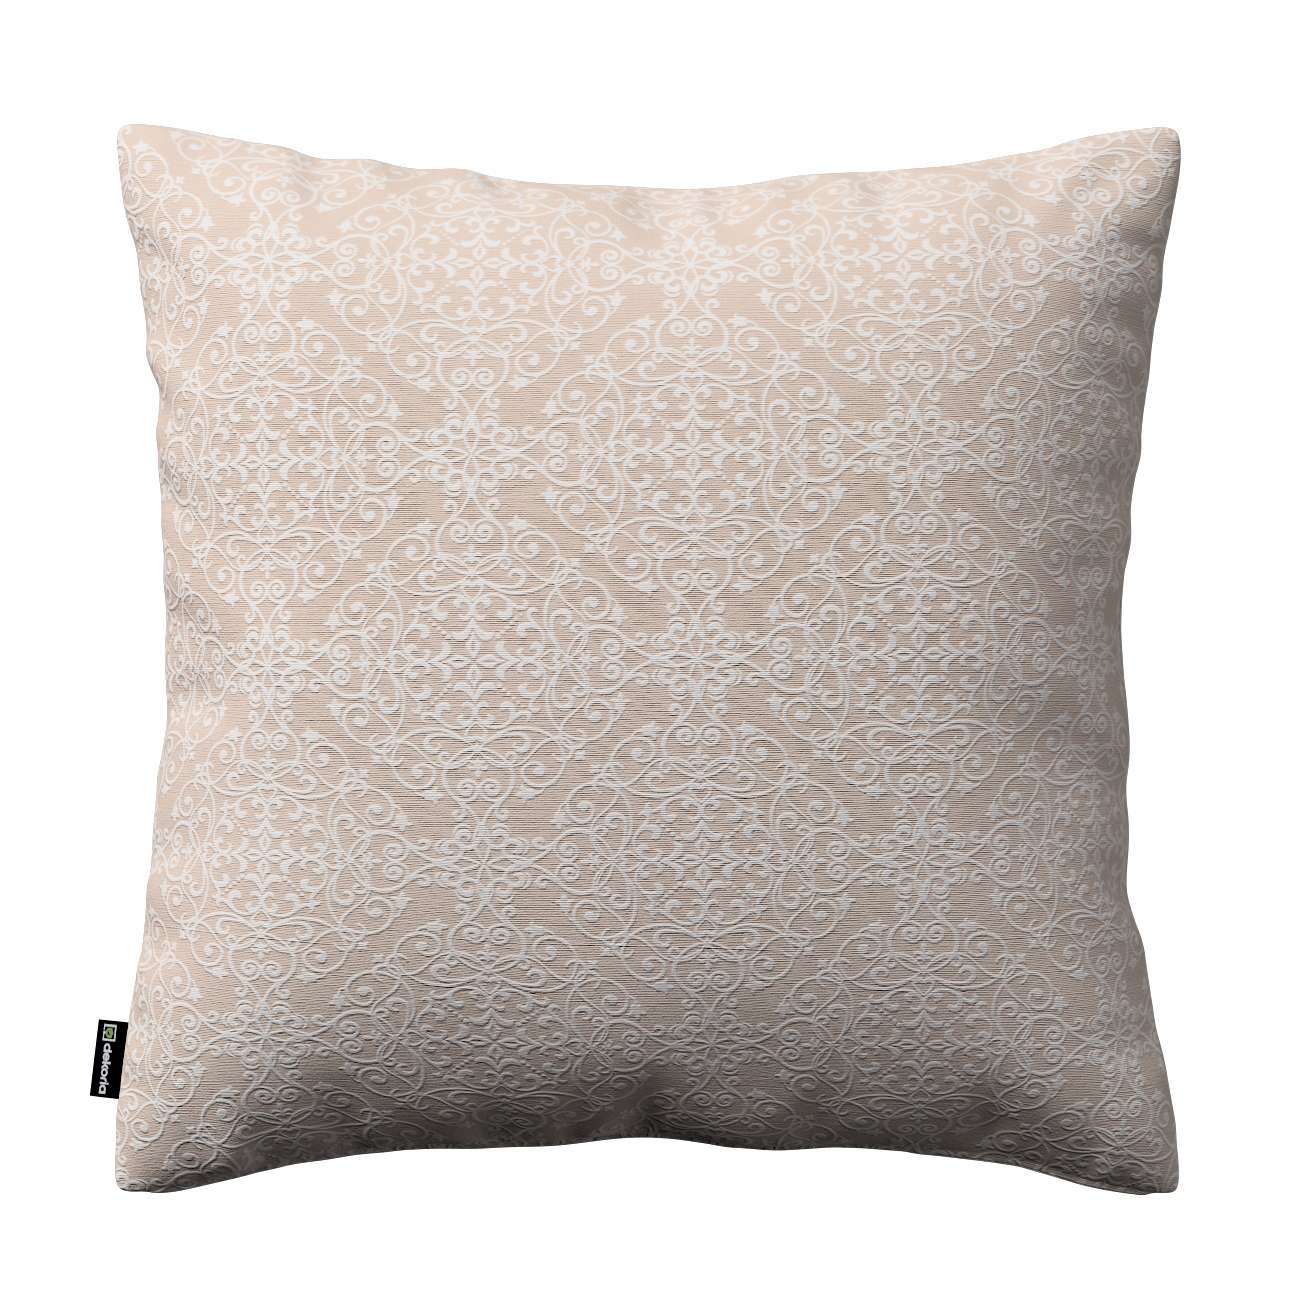 Kinga cushion cover 43 x 43 cm (17 x 17 inch) in collection Flowers, fabric: 140-39